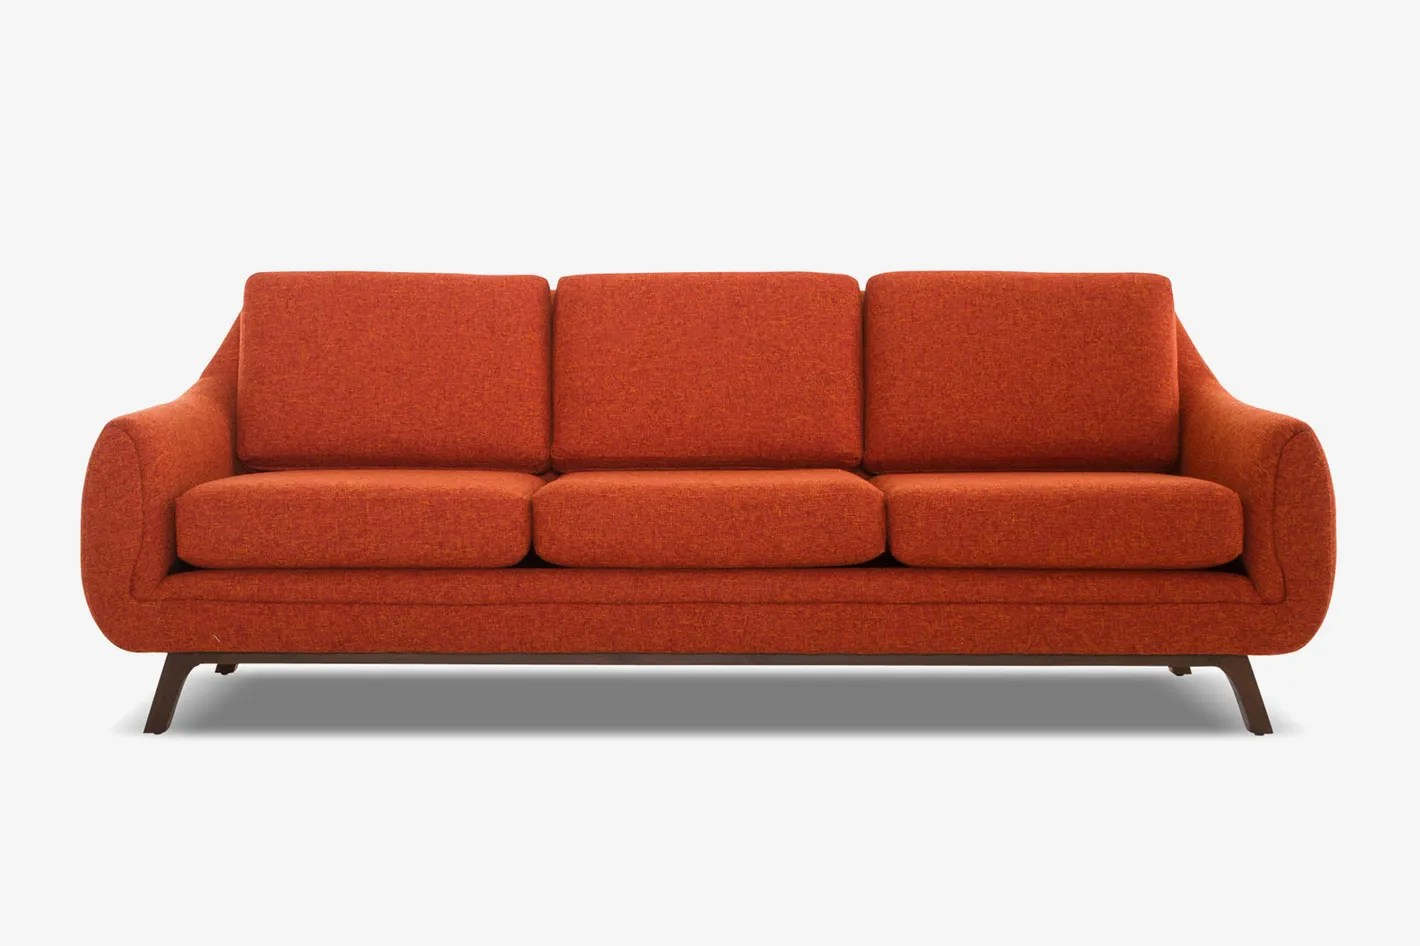 Sofa In A Box Companies Joybird Calhoun Sofa